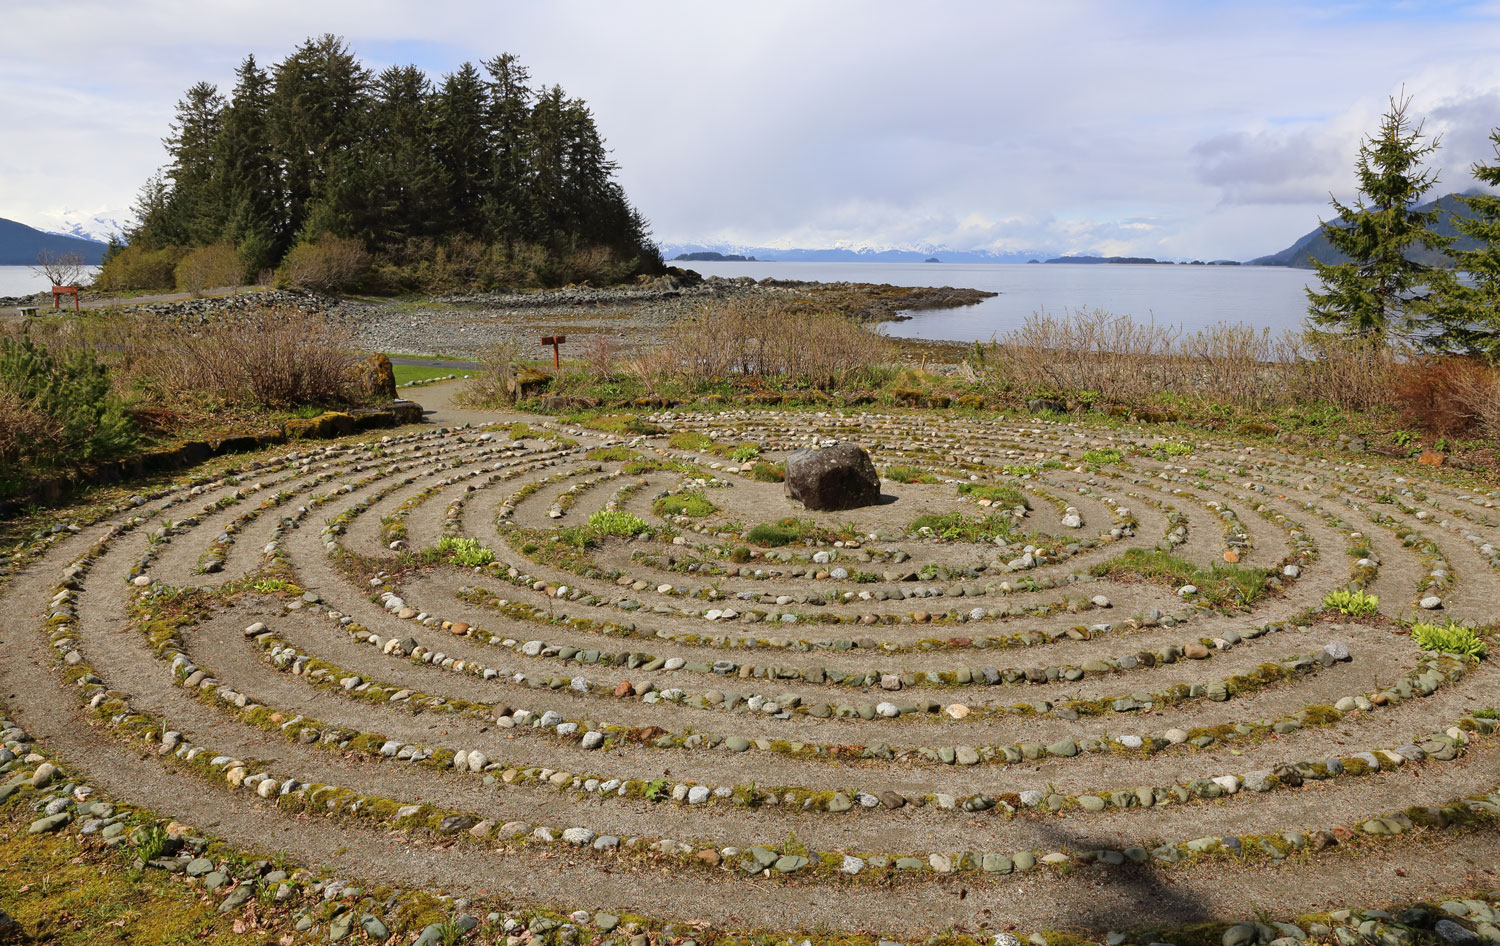 The Merciful Love Labyrinth at the Shrine of St. Therese. The chapel is on the island behind the labyrinth.